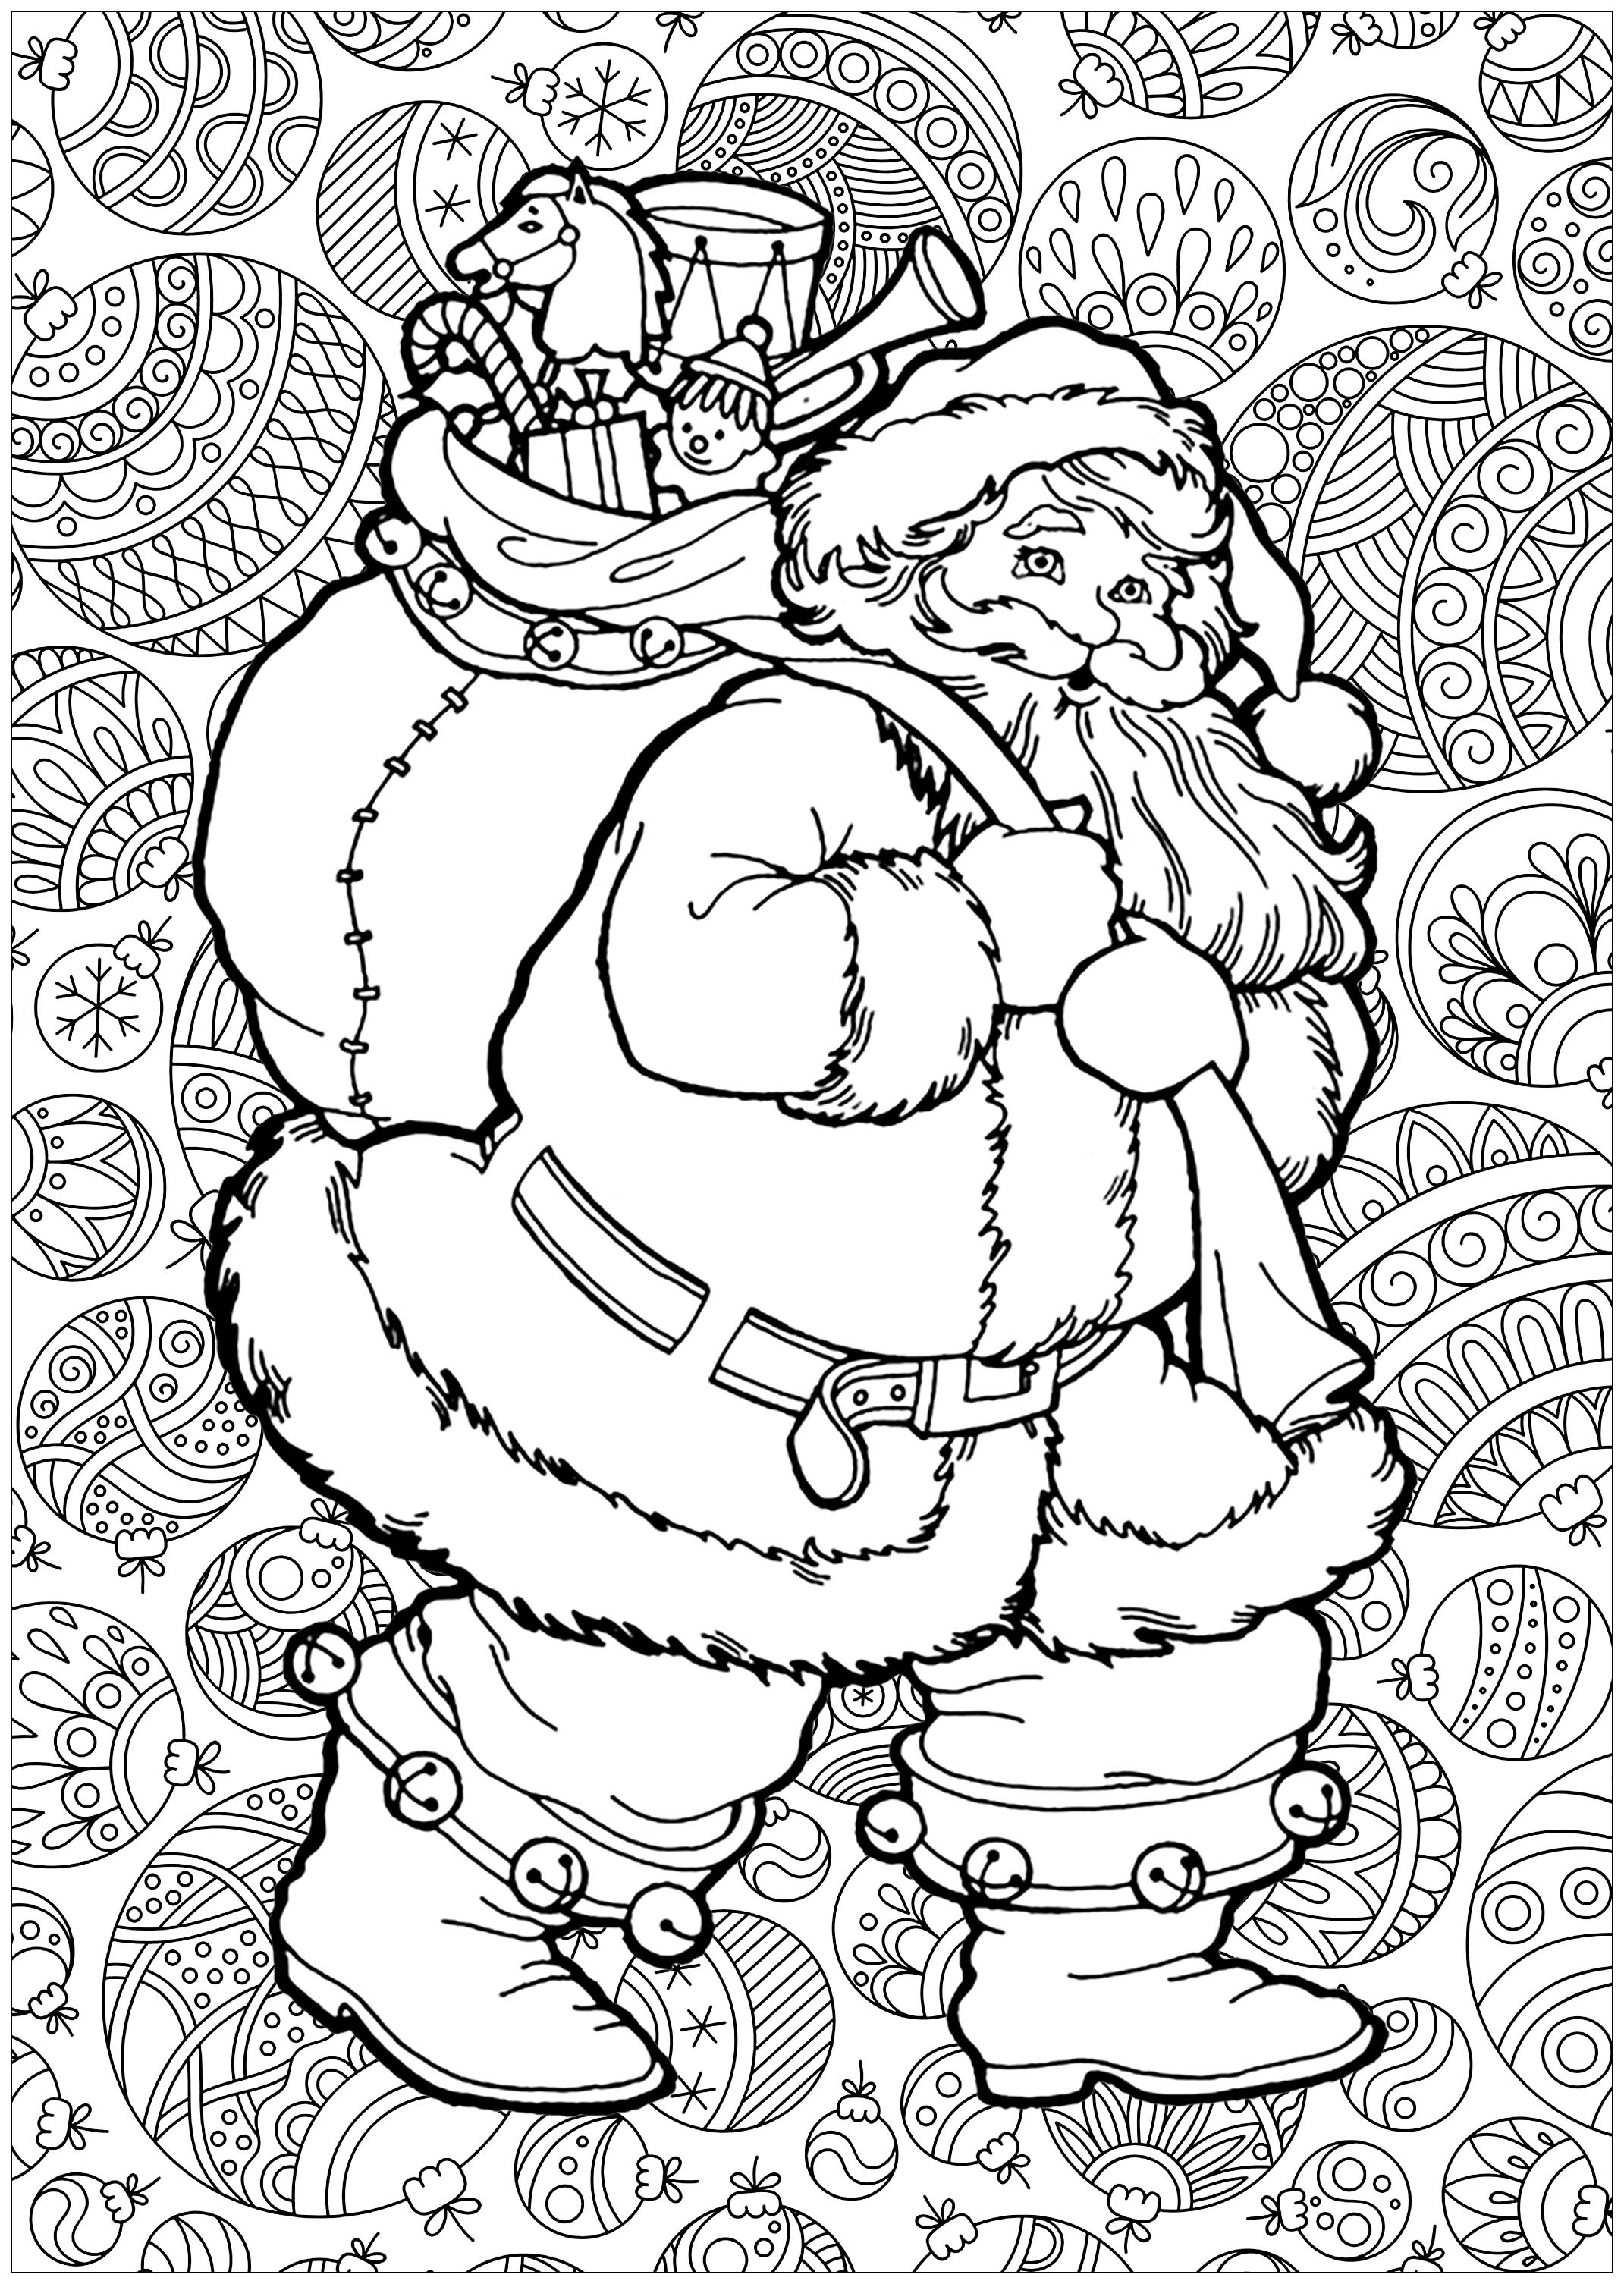 Coloring santa claus with background